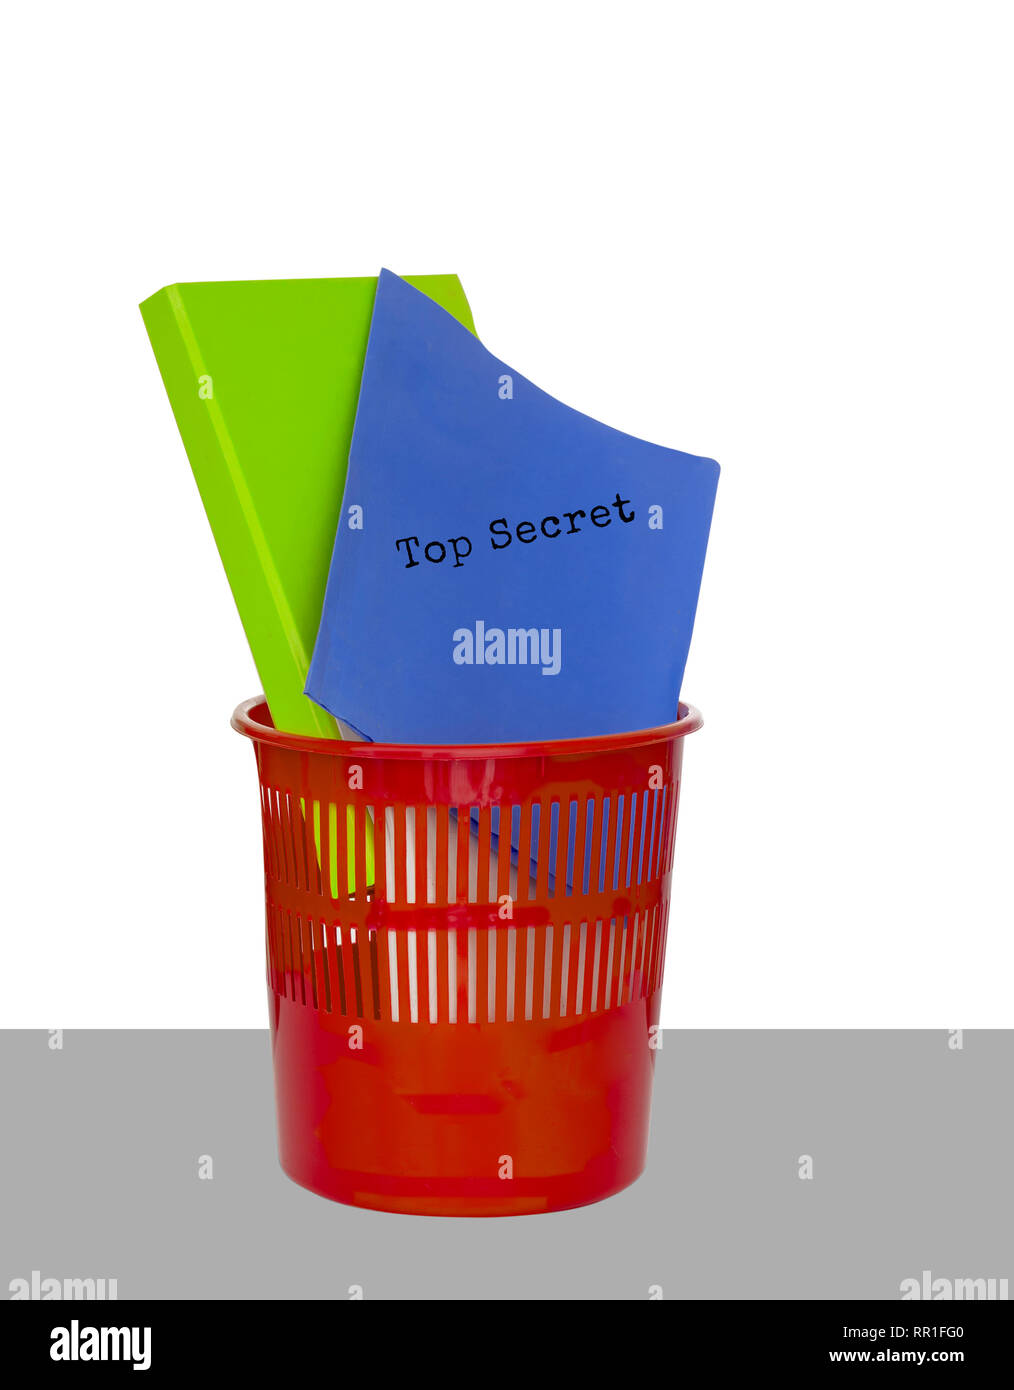 Secret documents and business files in rubbish bin. White background. - Stock Image